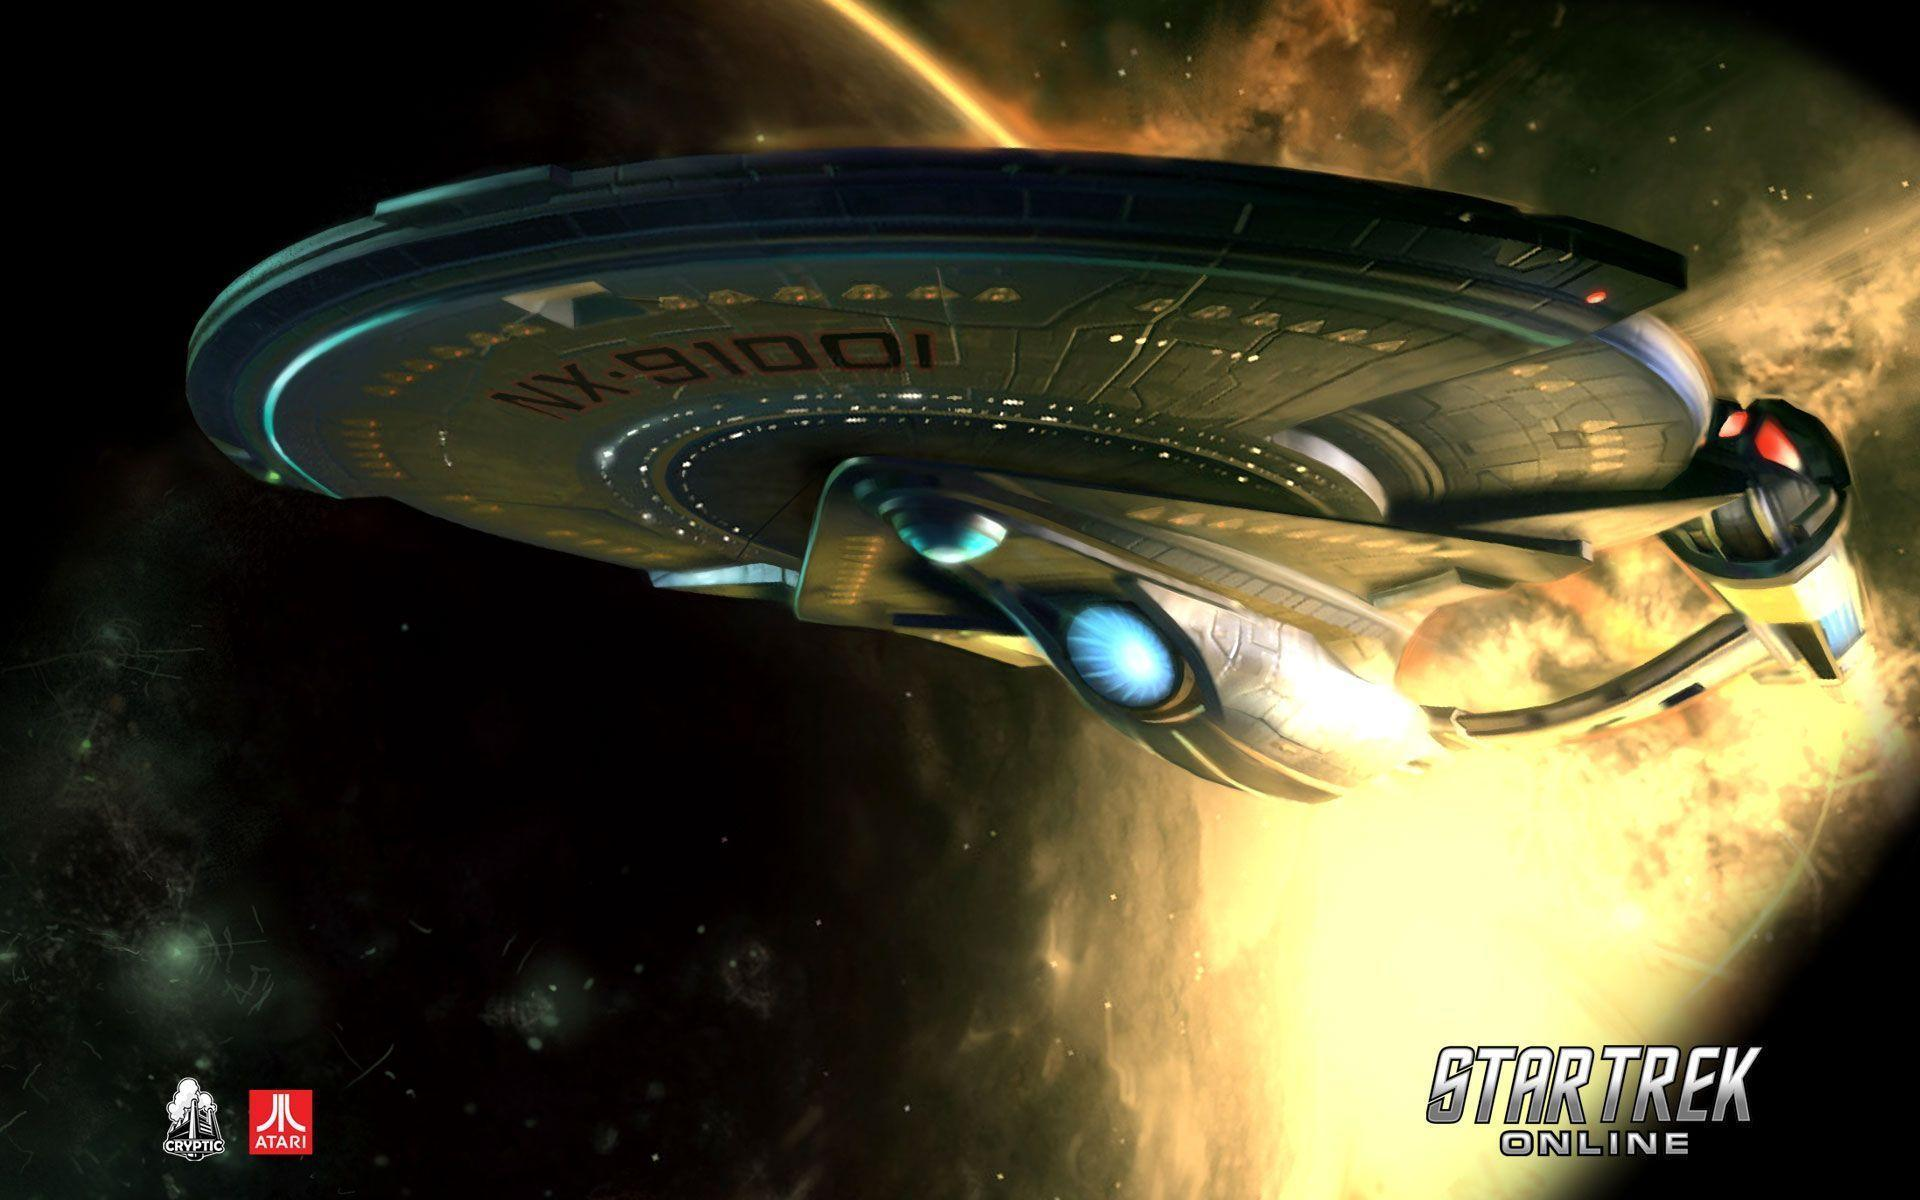 star trek wallpaper by - photo #20